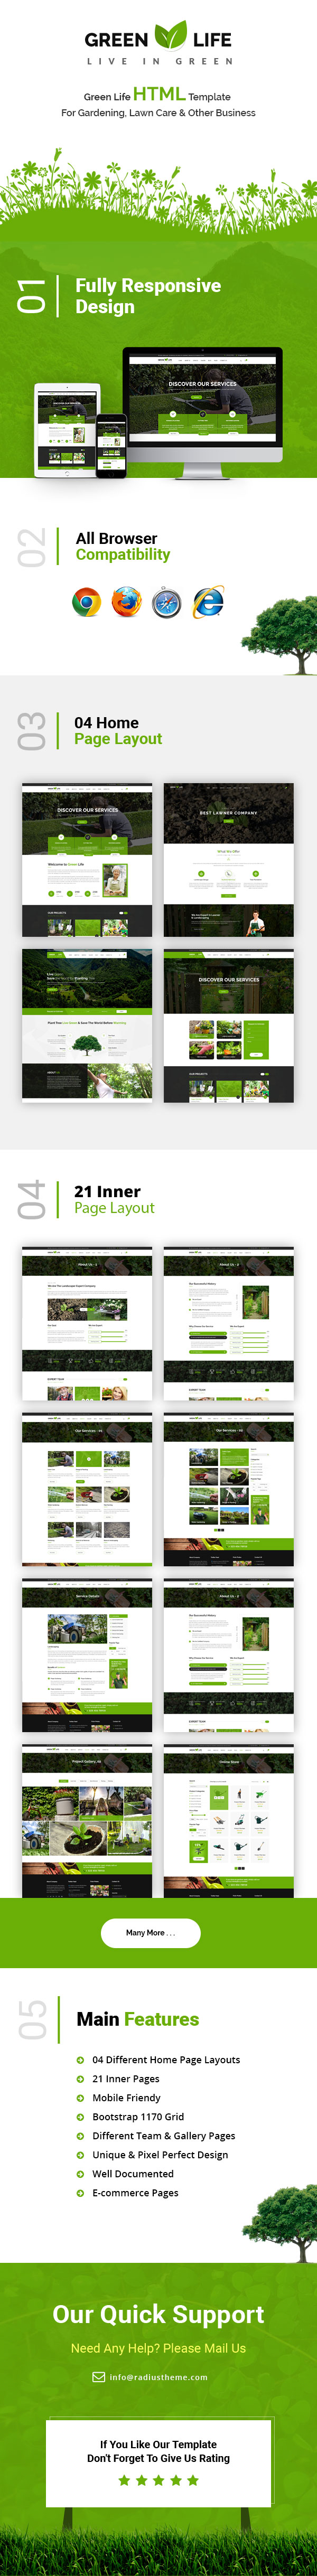 greenlife gardening and landscaping html5 template by radiustheme